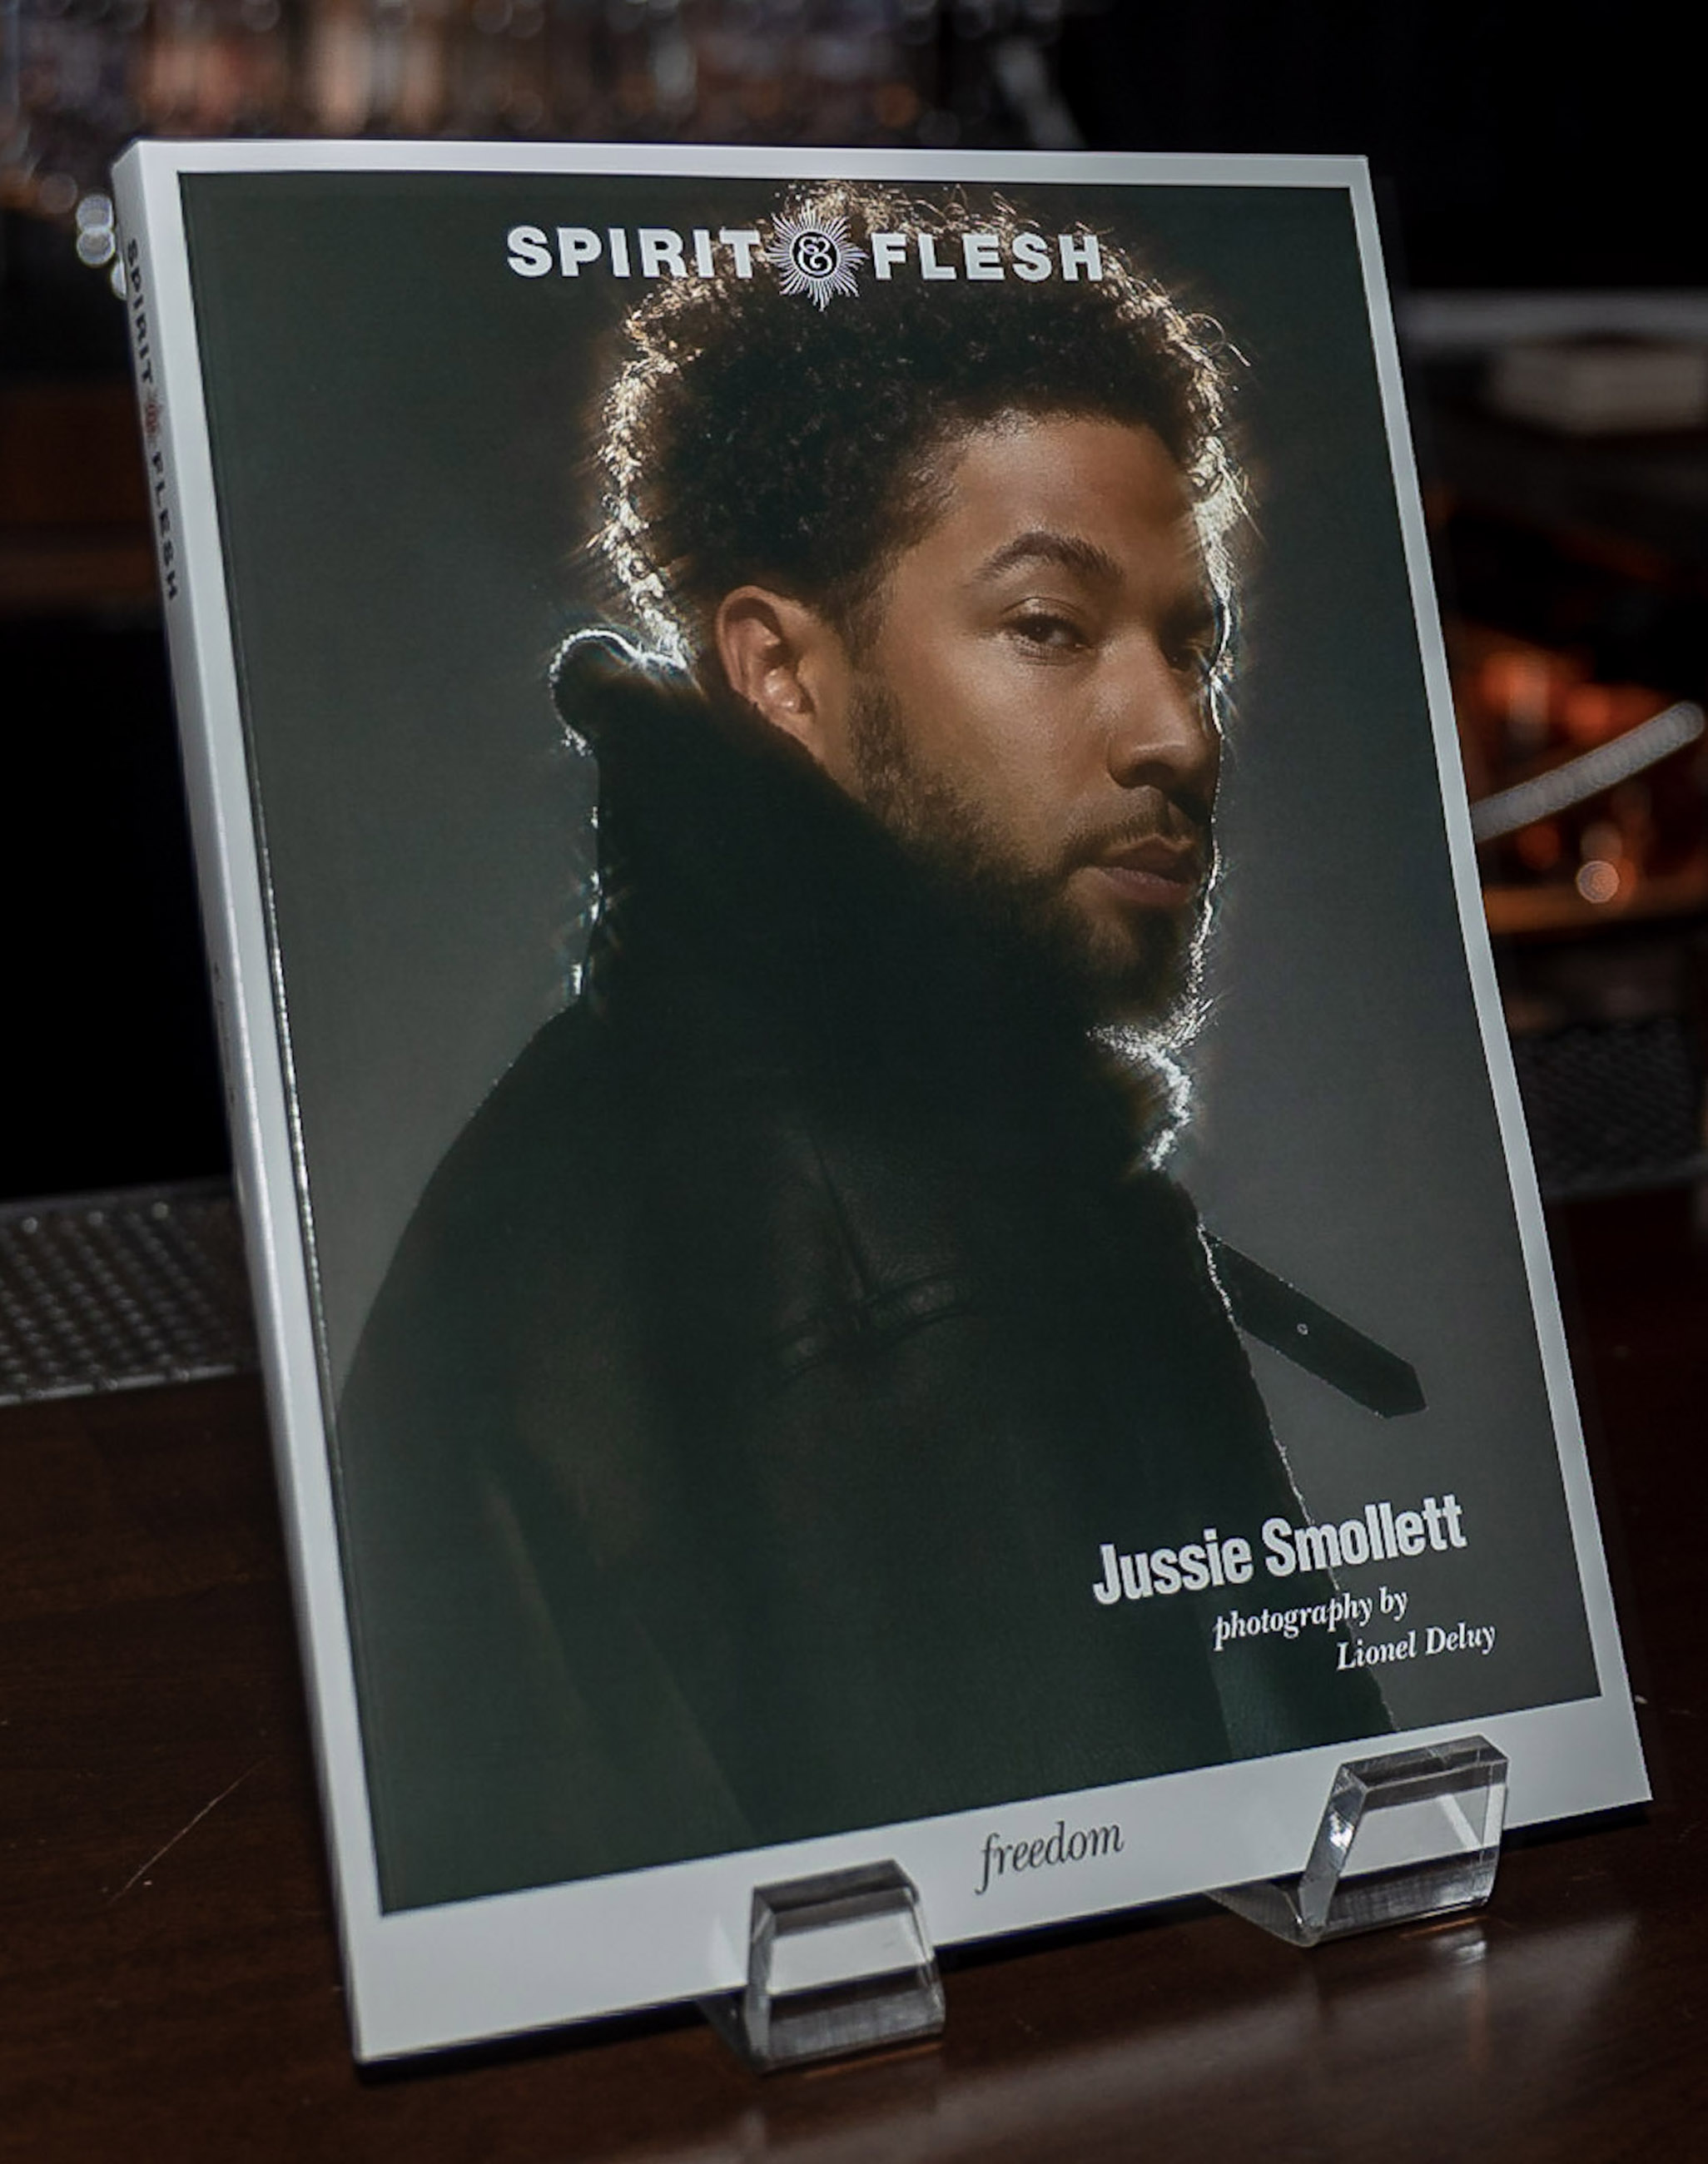 Spirit & Flesh Magazine Jussie Smollett cover event by Kenneth de la Torre